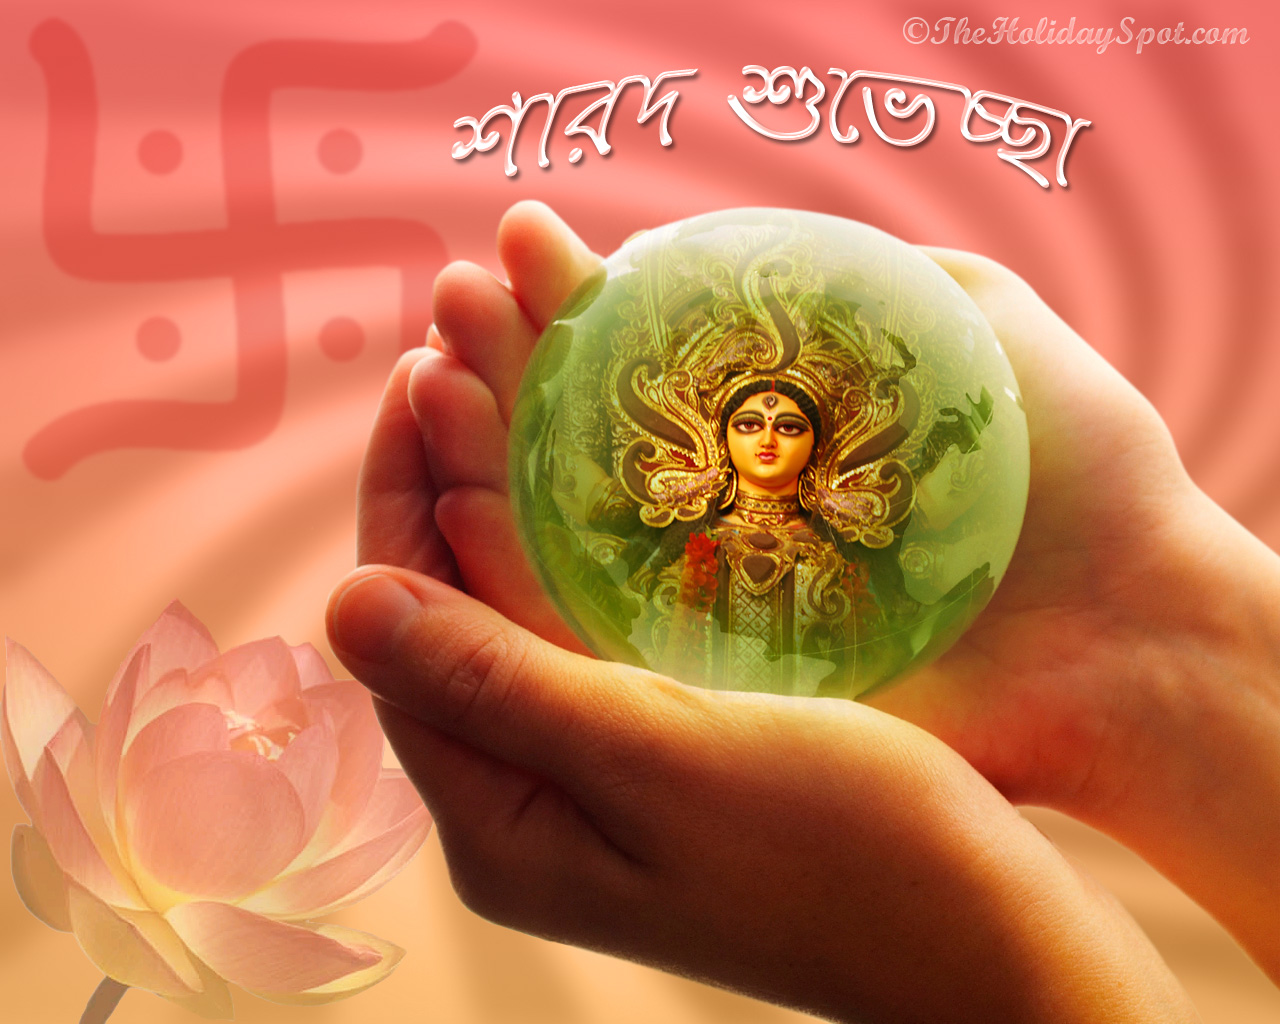 Durga puja wallpapers, its free, download now!.